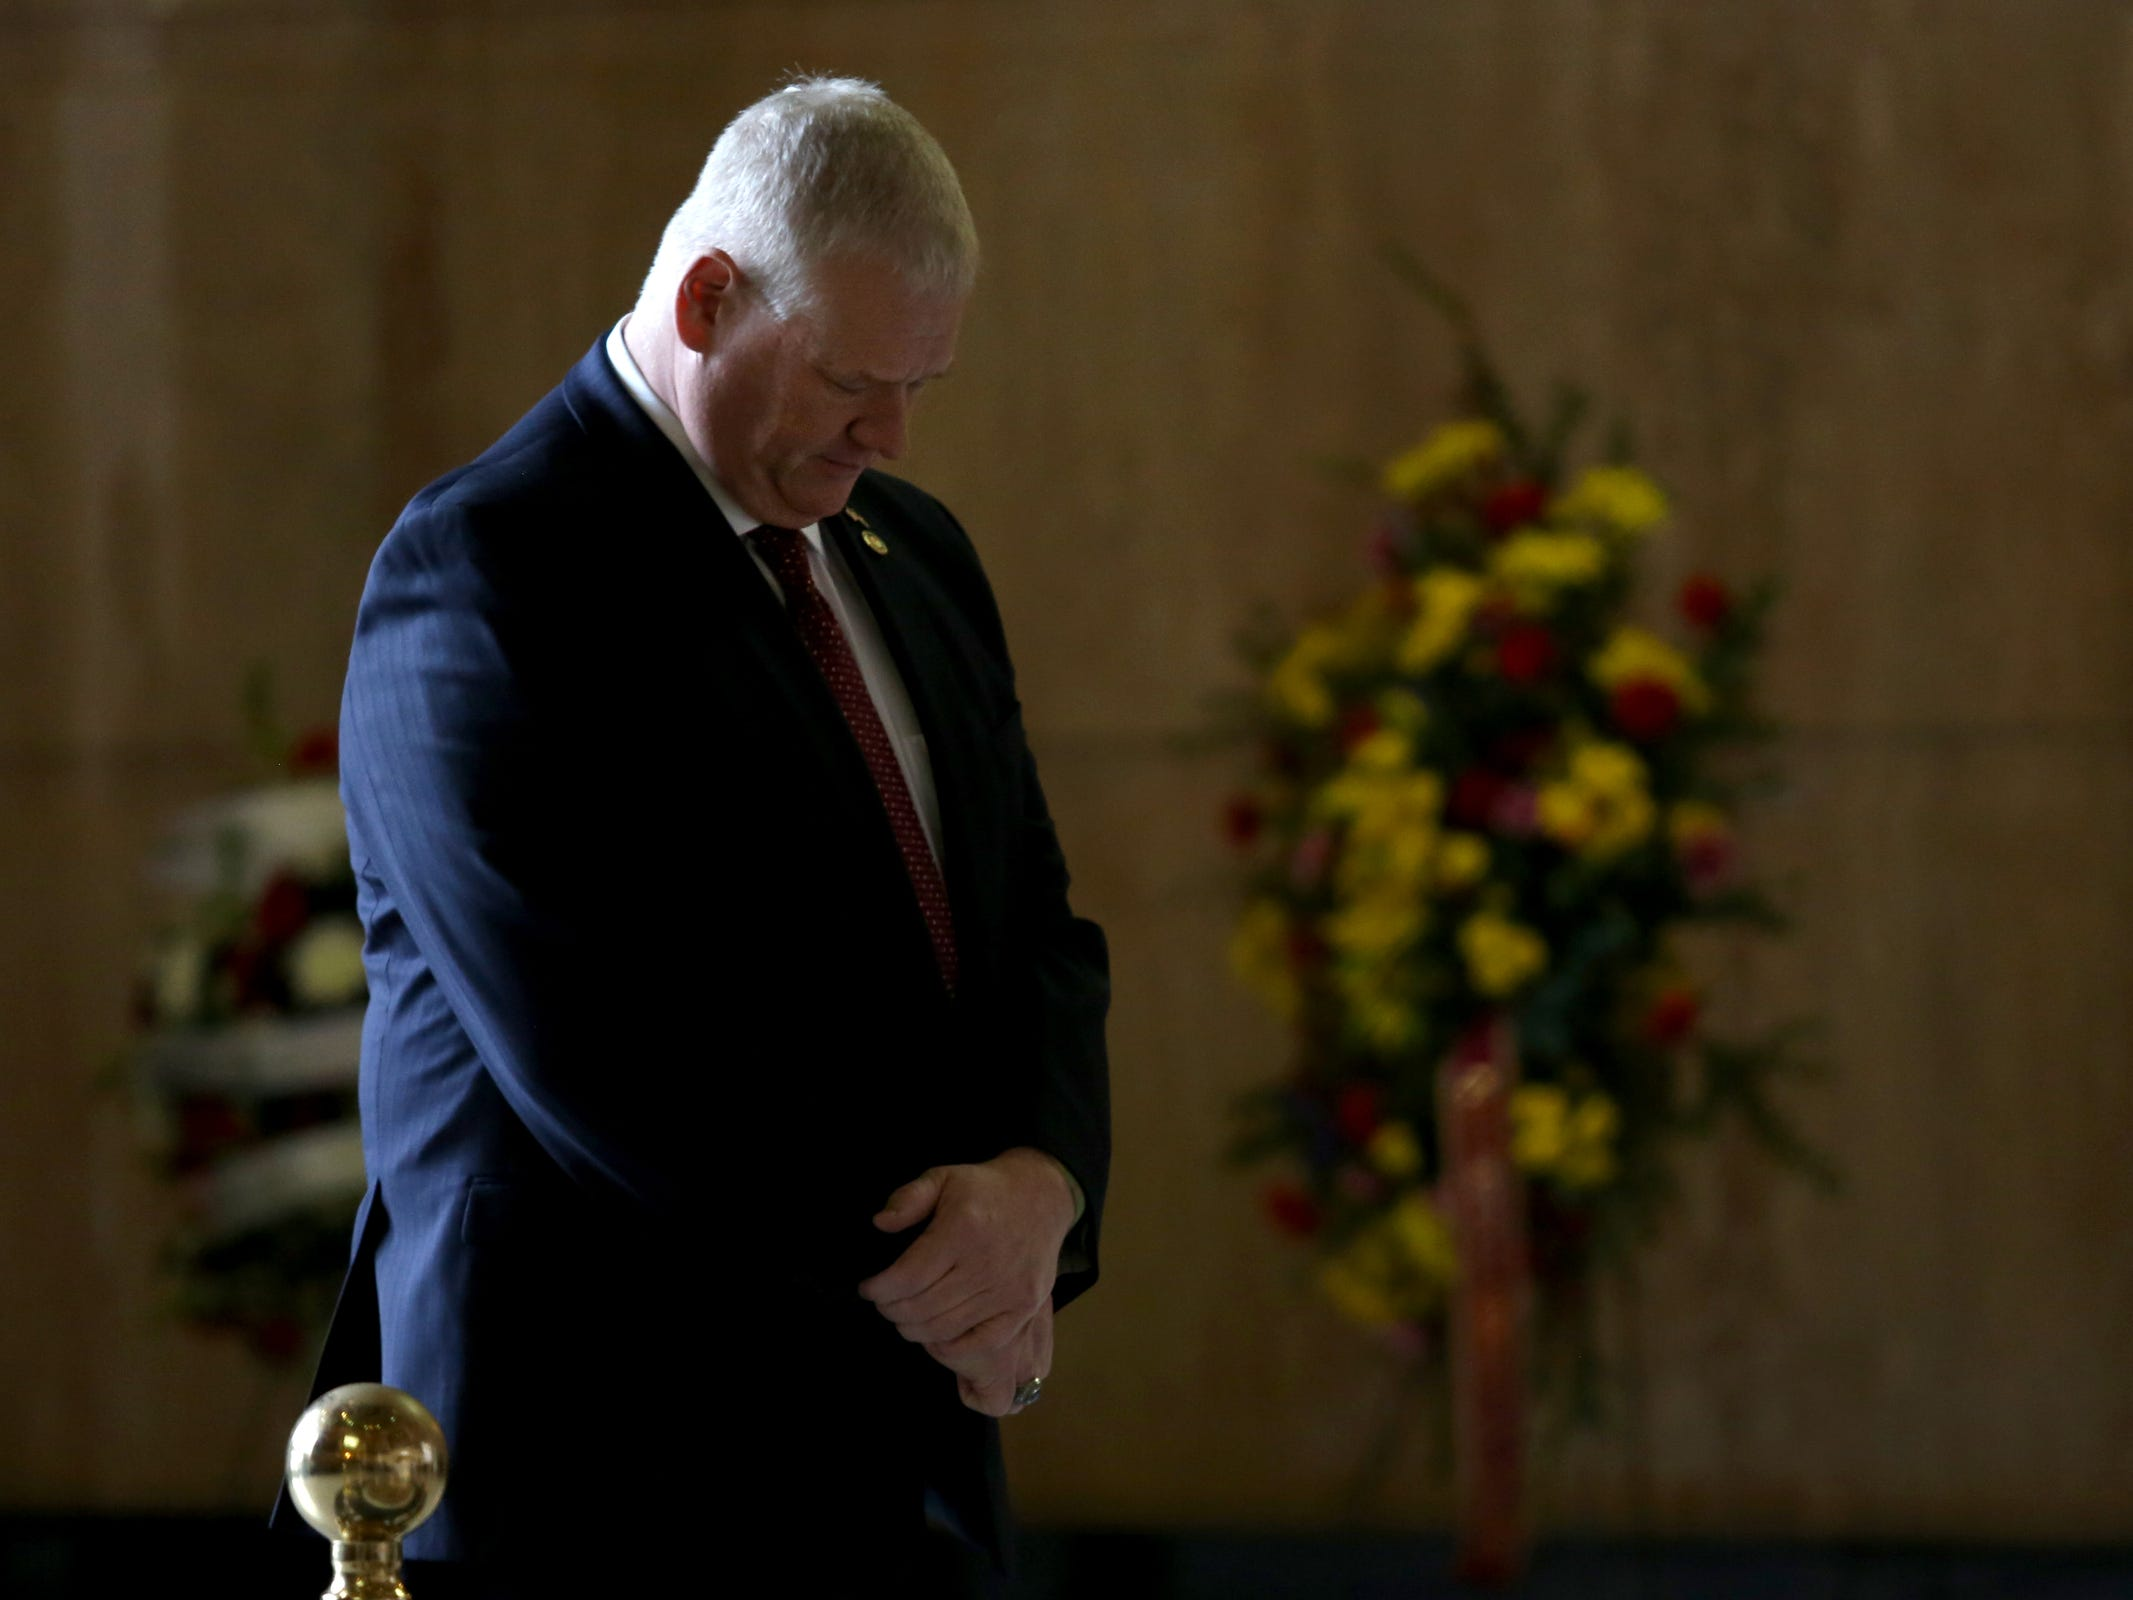 Rep. Paul Evans bows his head as Secretary of State Dennis Richardson lies in state in the rotunda at the Oregon State Capitol in Salem on Wednesday, March 6, 2019.